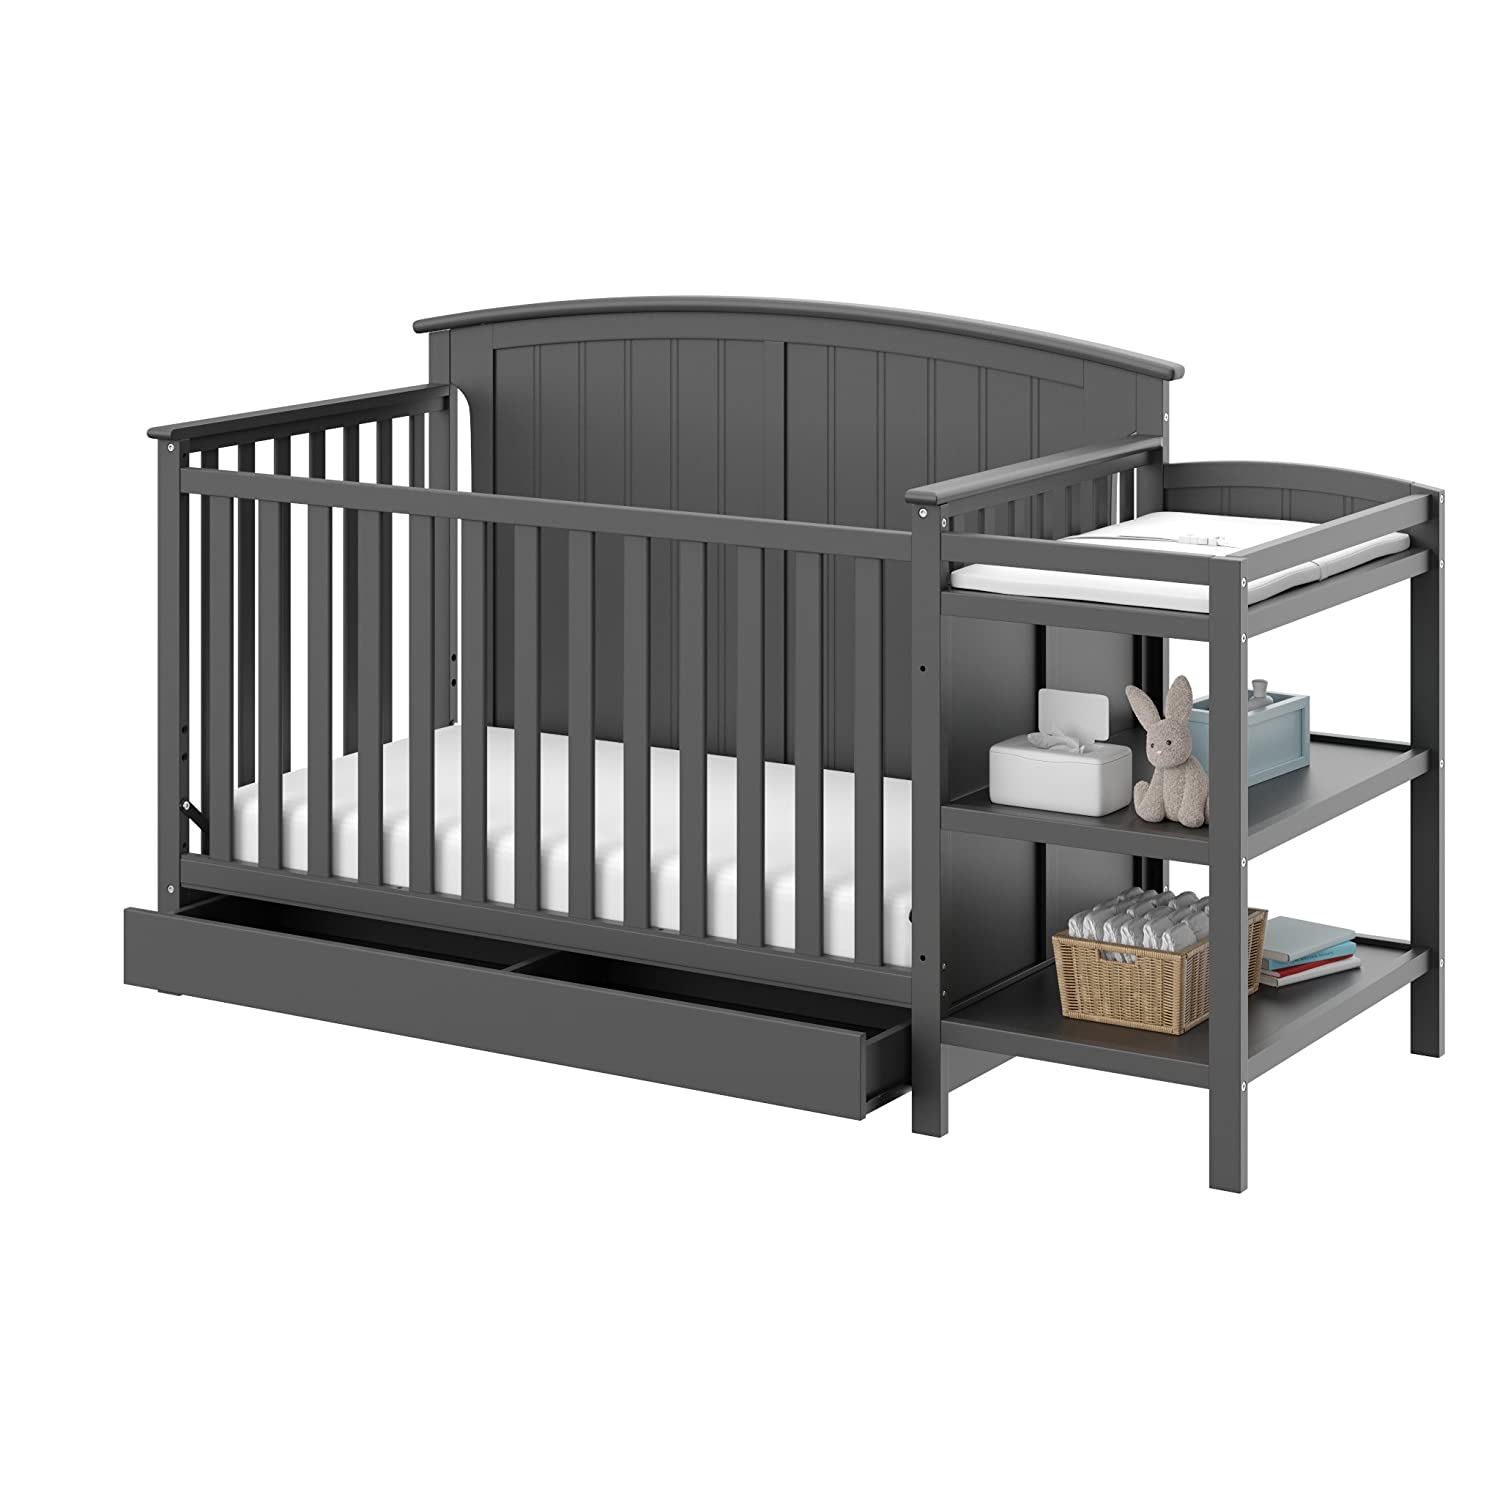 Storkcraft Steveston four in one Convertible Crib And Changer